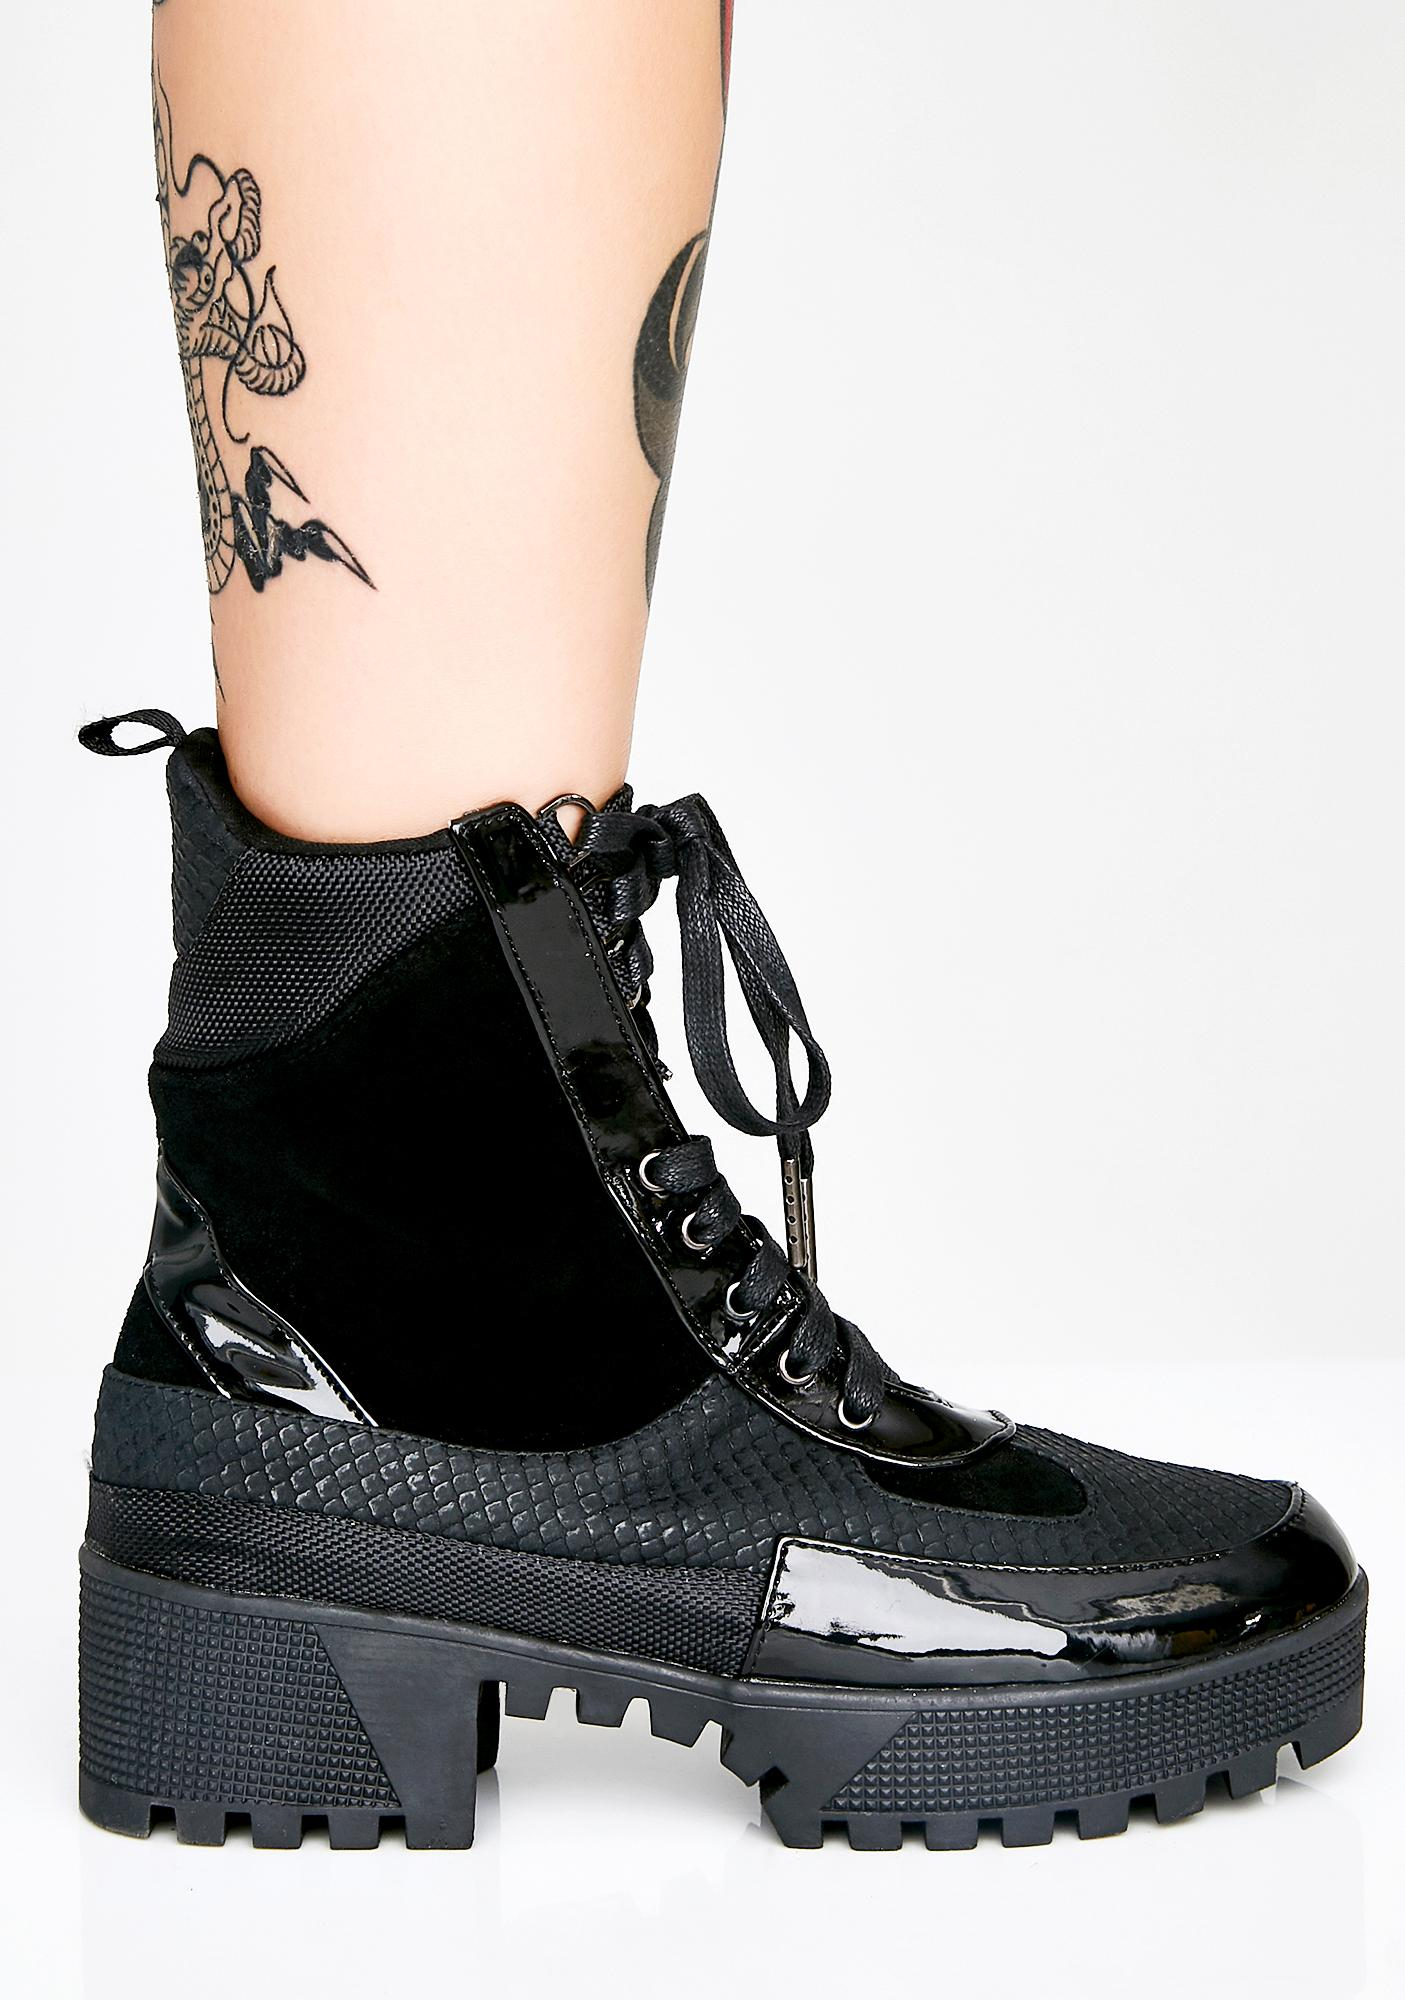 Night In Command Combat Boots